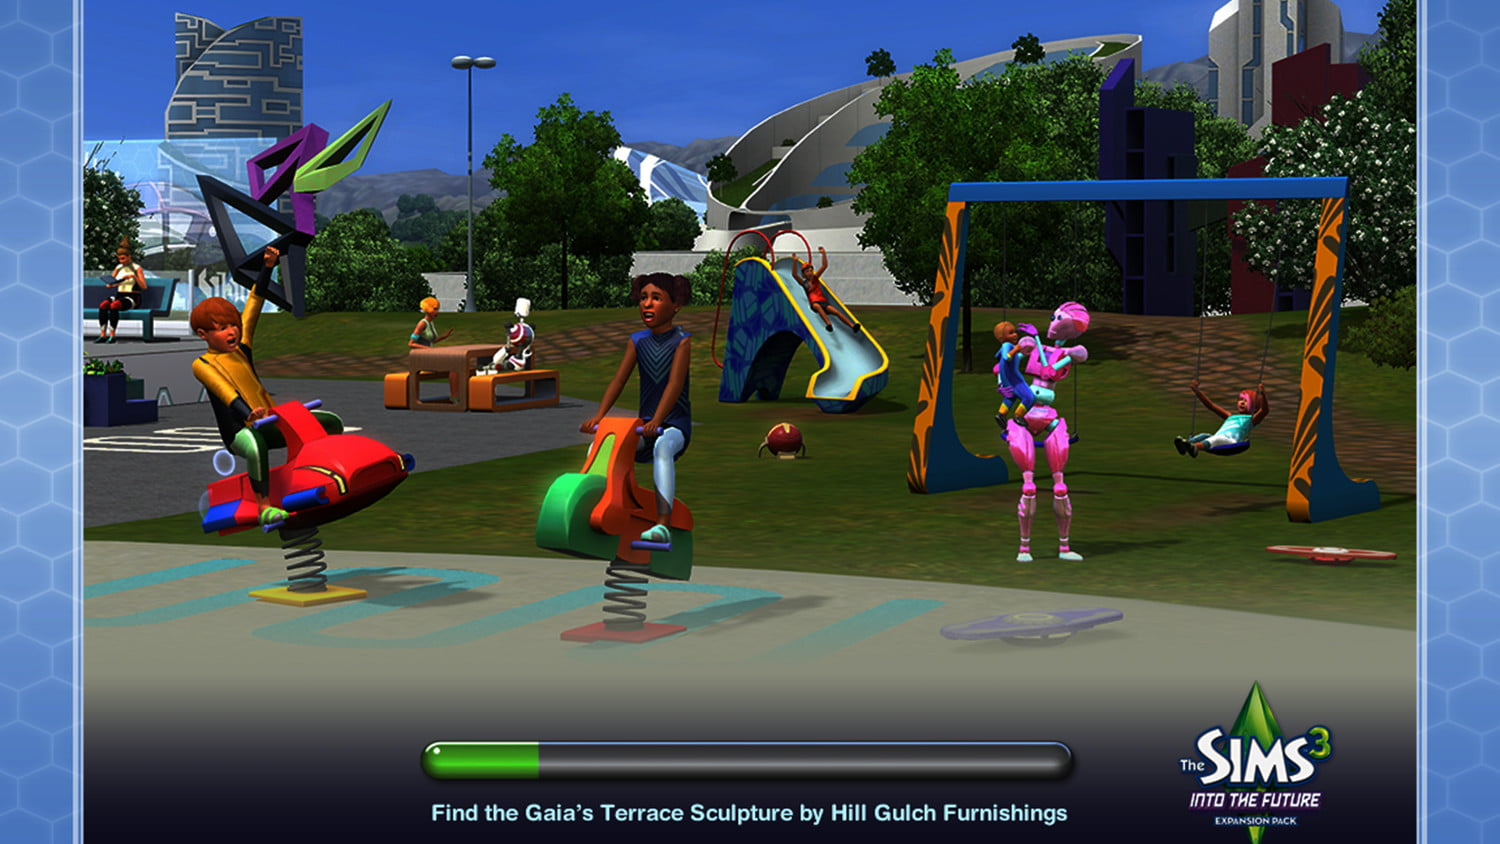 Playing 'The Sims' in the harsh light of adulthood | Digital